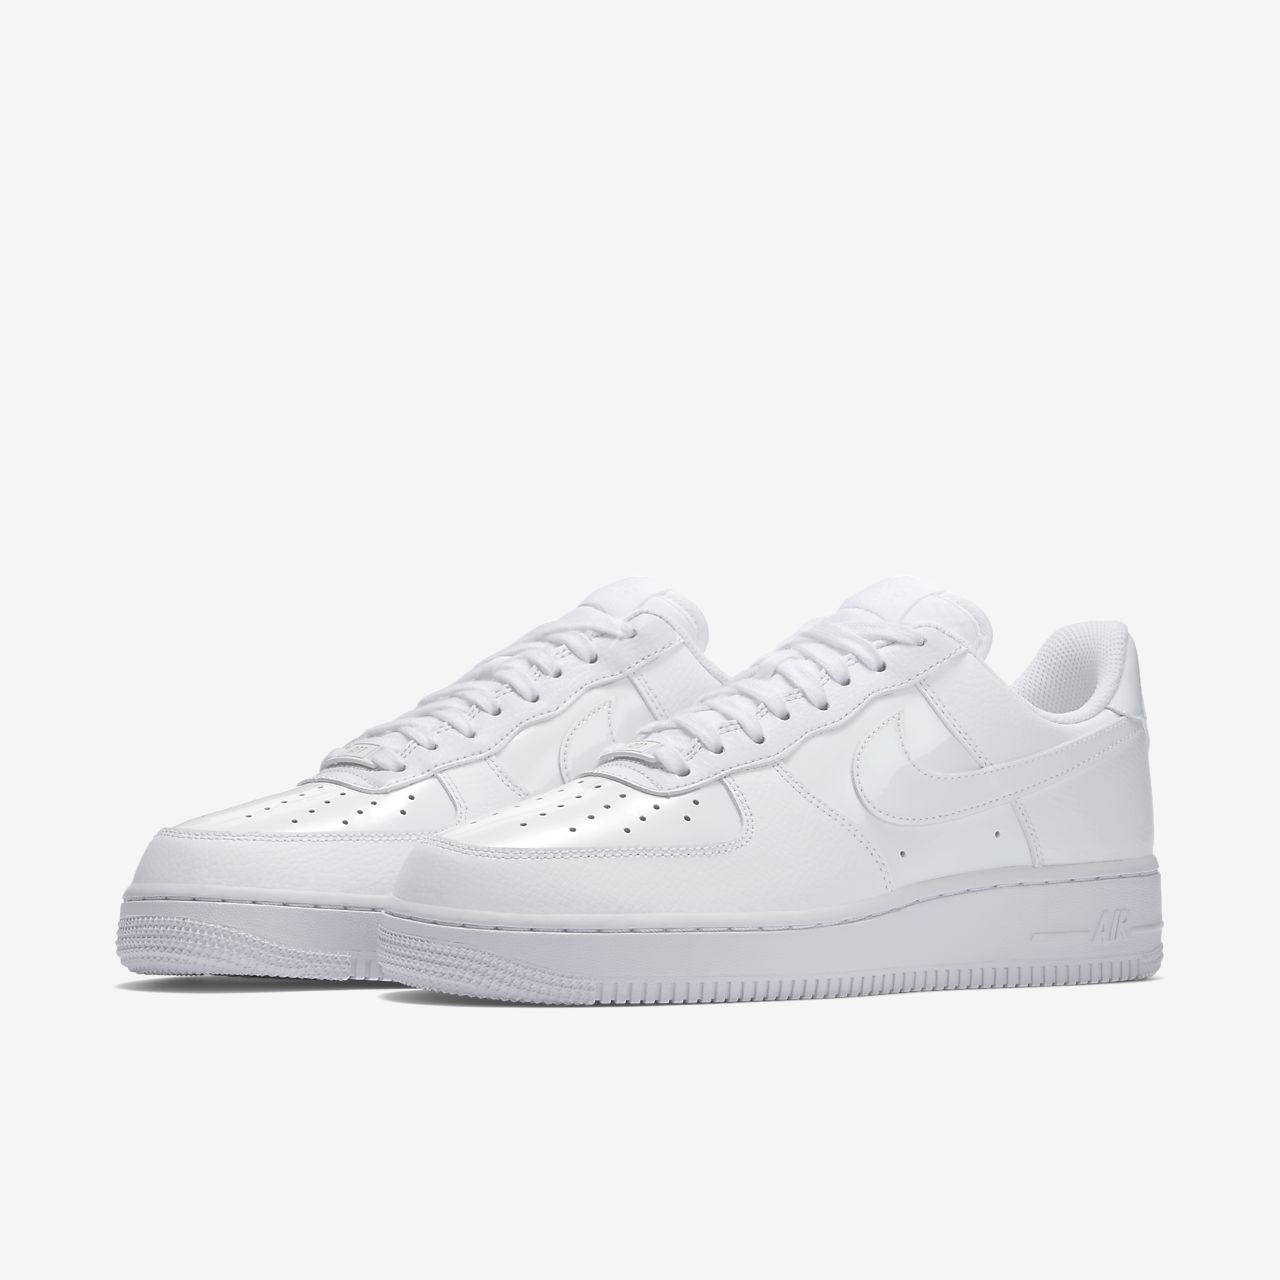 Nike Air Force 1 '07 Patent Women's SG